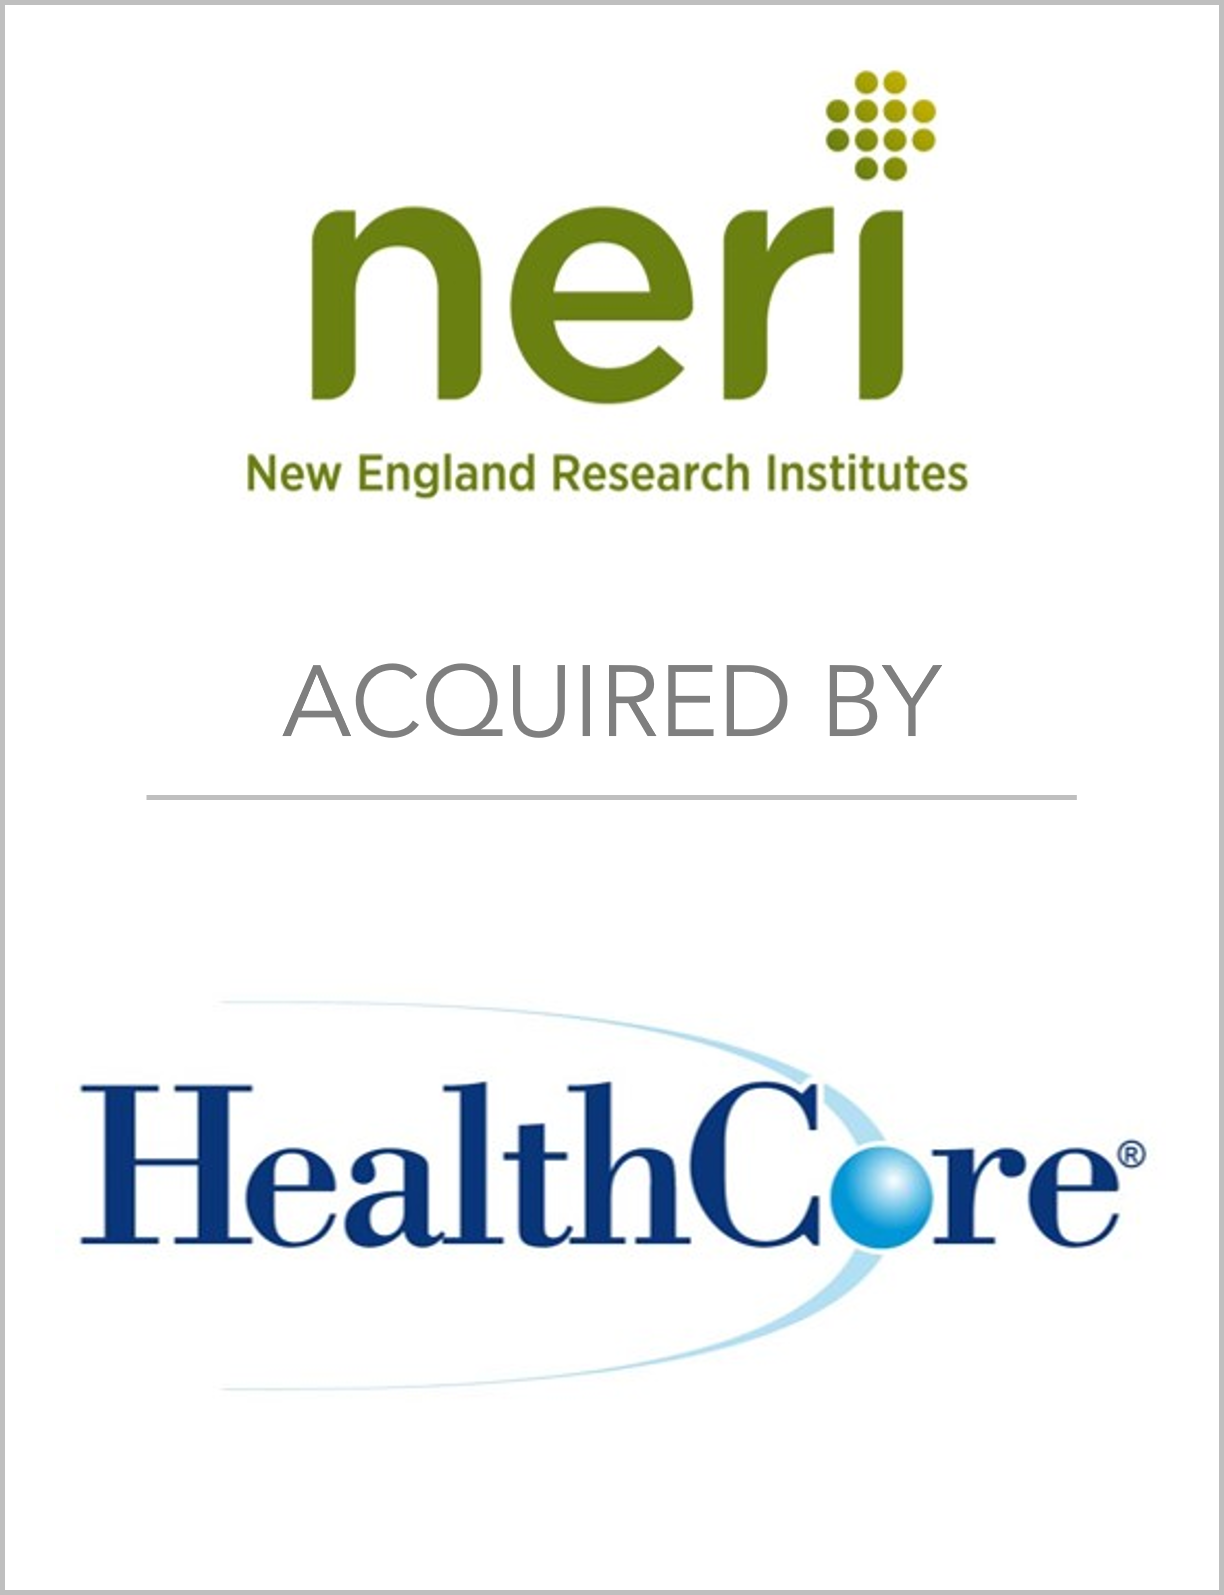 HealthCore acquisition of NERI stren